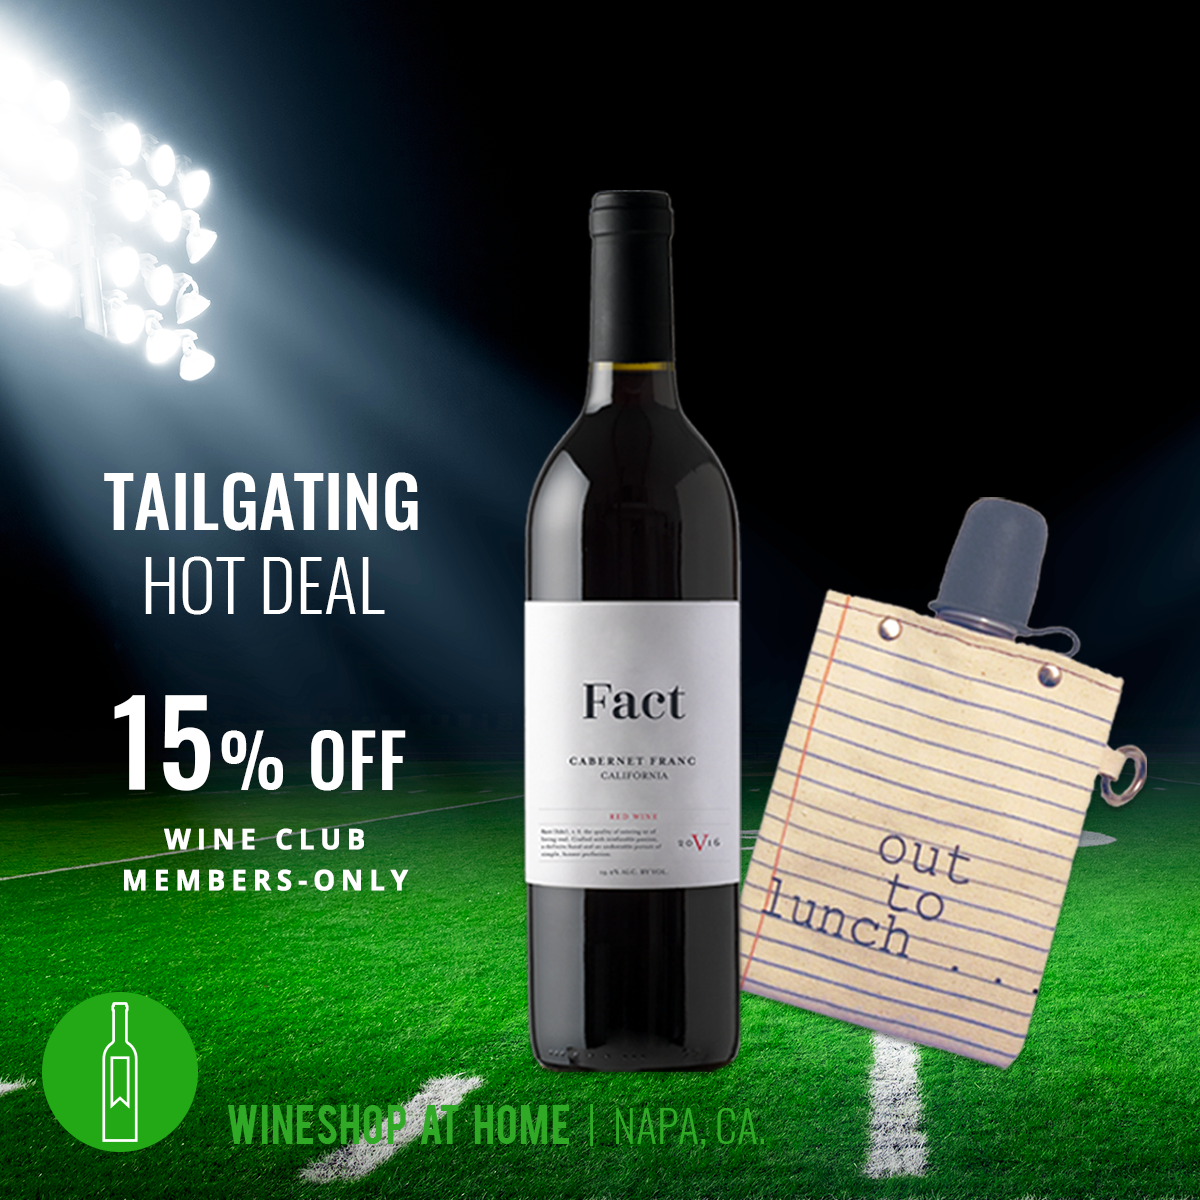 A Hot Deal for football fans , this Hot Deal bundle features a ...